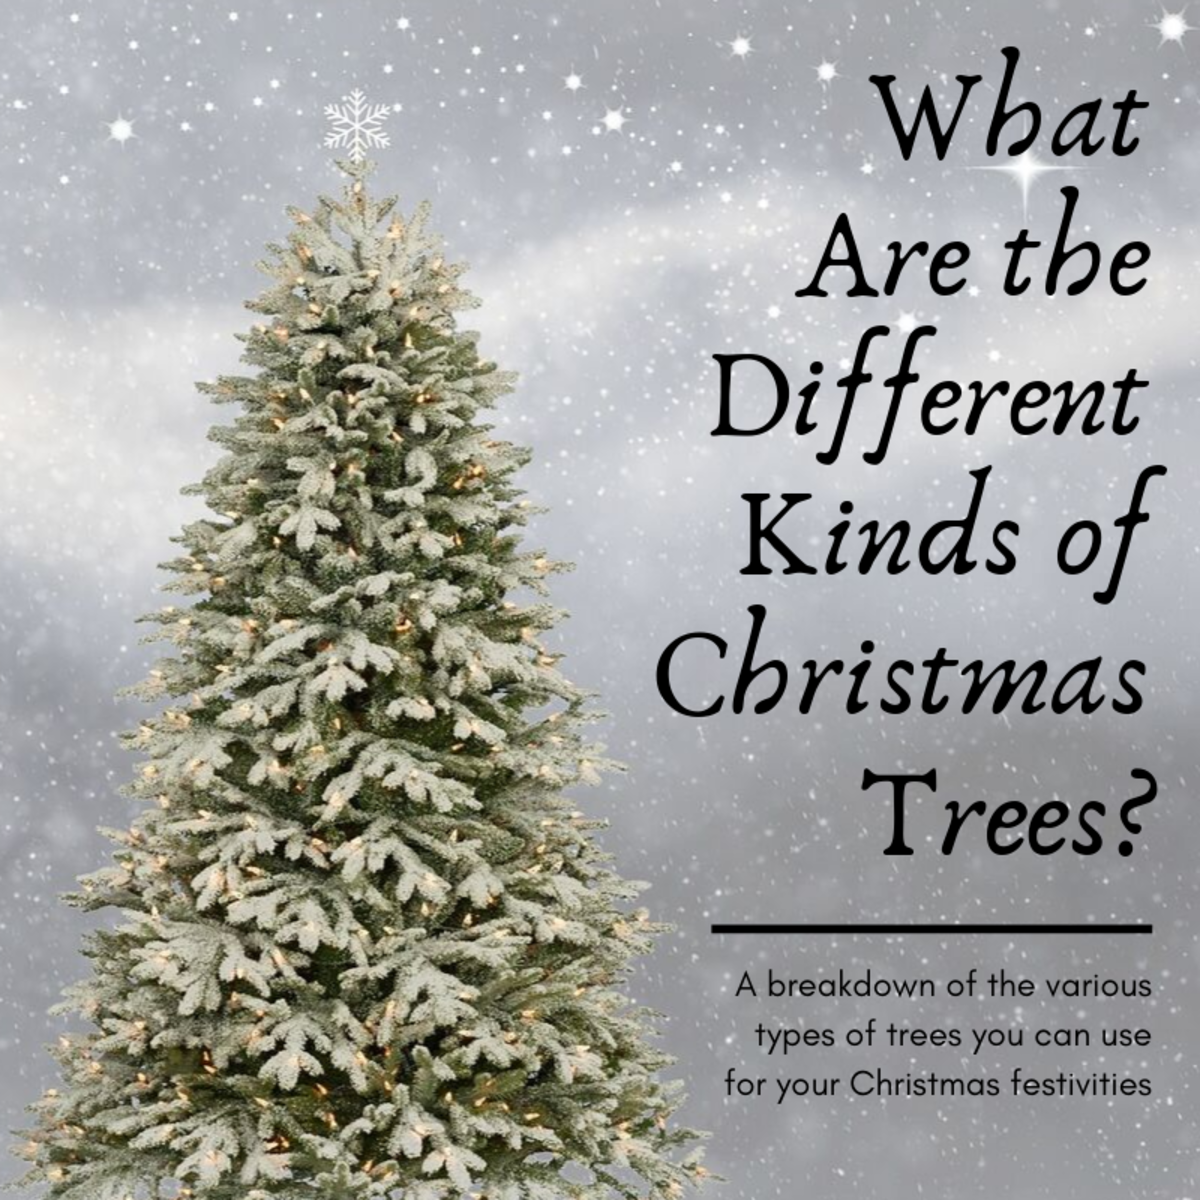 Types of Christmas Trees